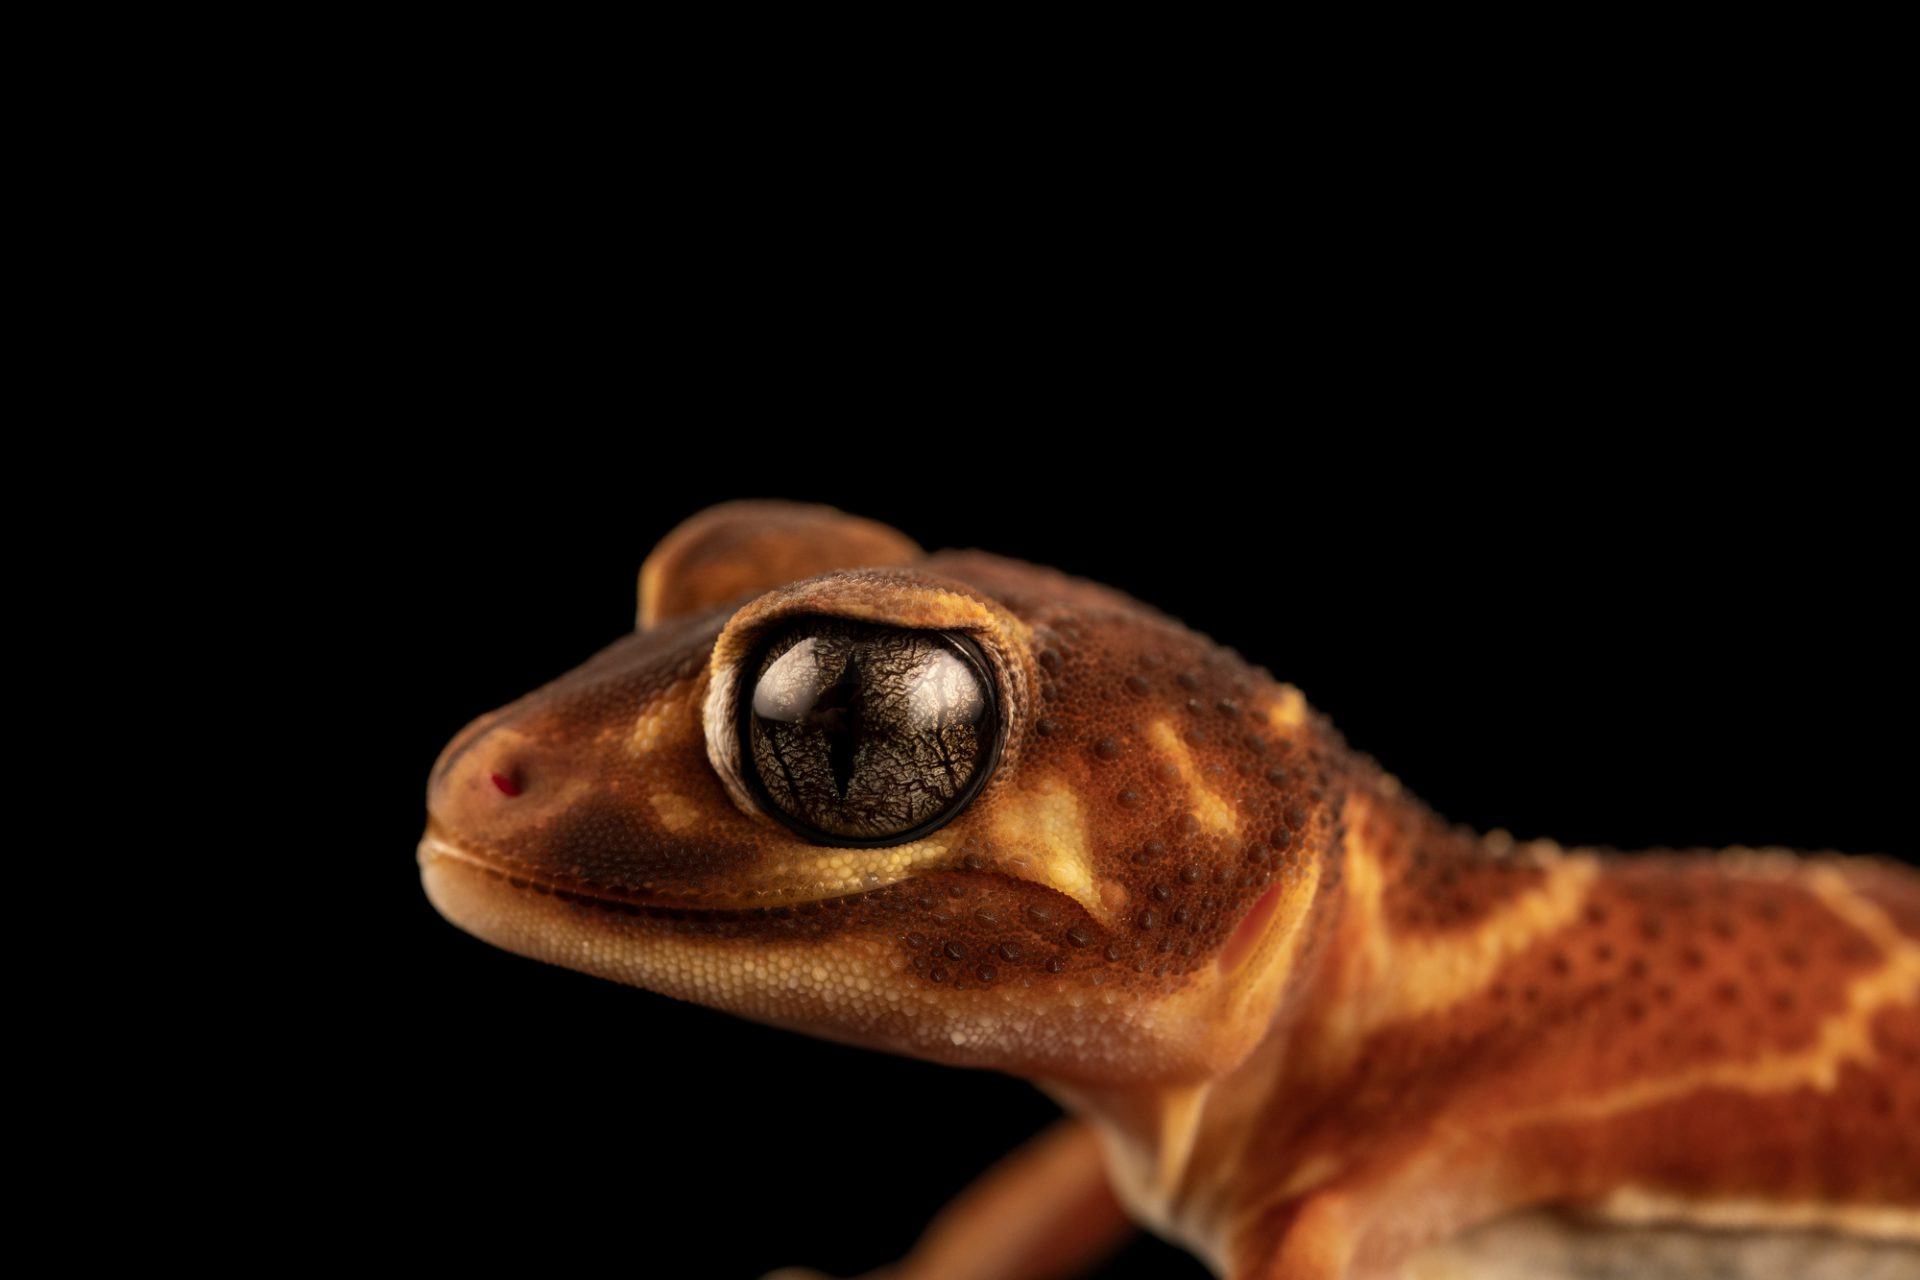 Photo: A Three-lined or smooth knob-tailed gecko (Nephrurus levis levis) from a private collection.